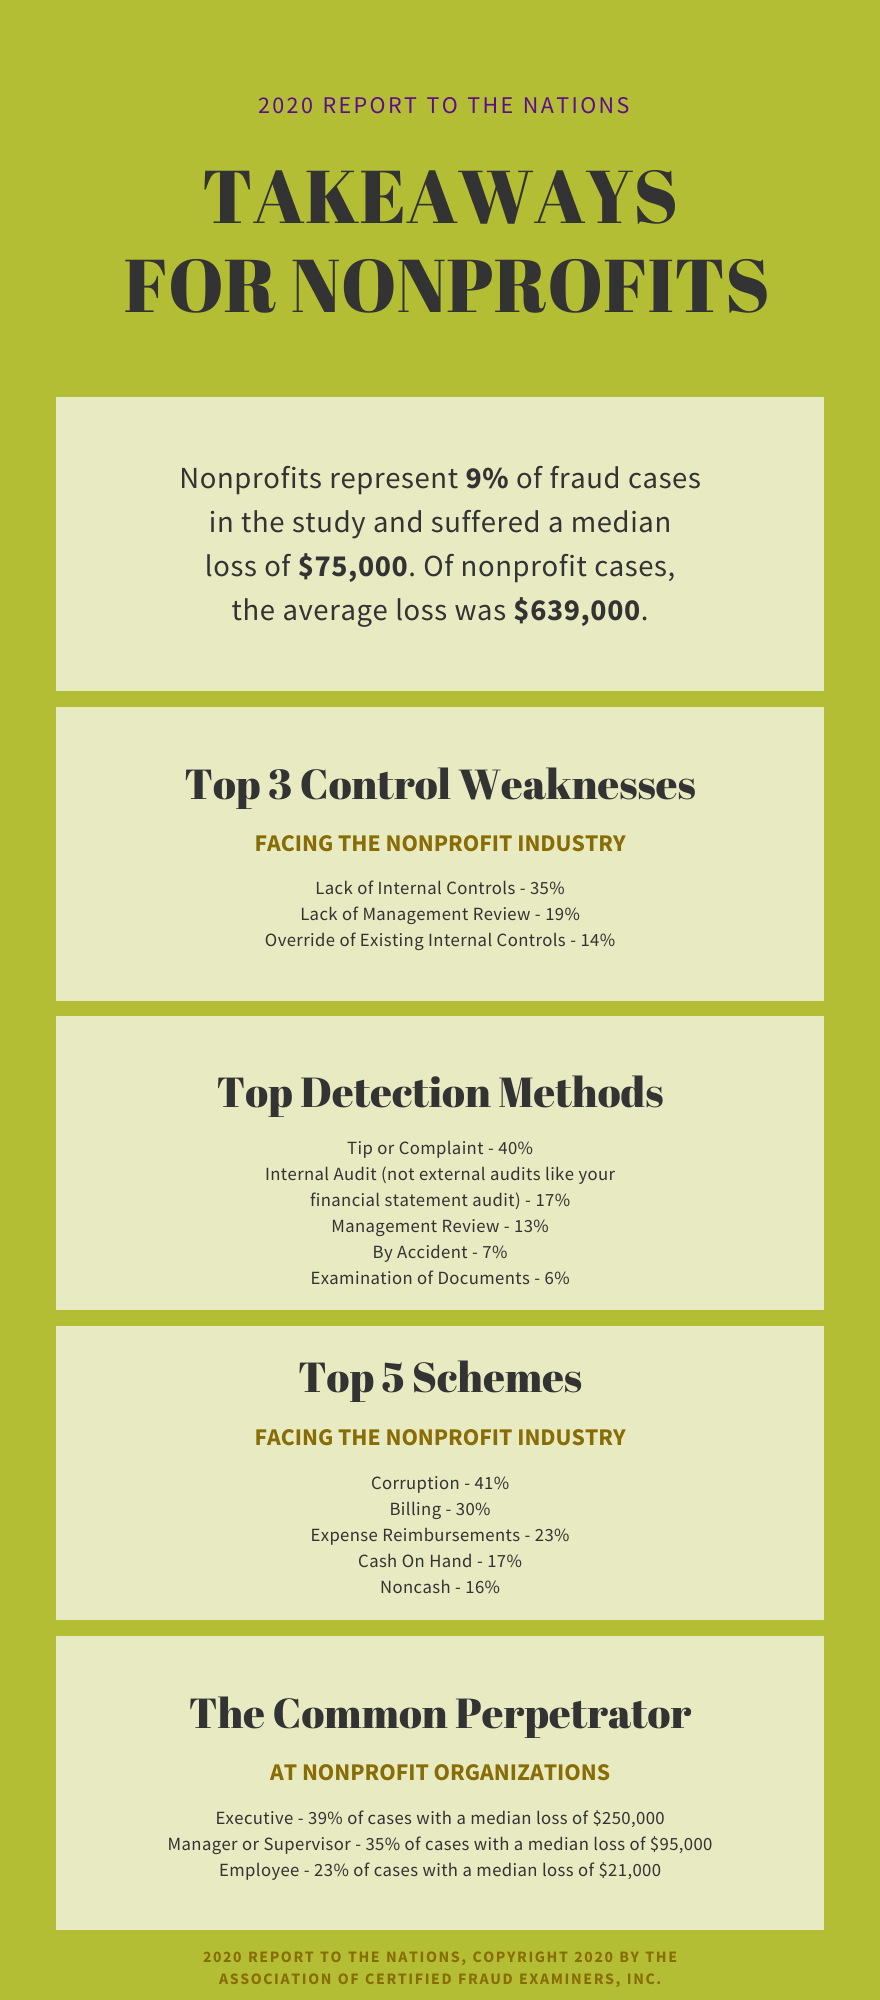 Takeaways on fraud at nonprofits from 2020 Report to the Nations